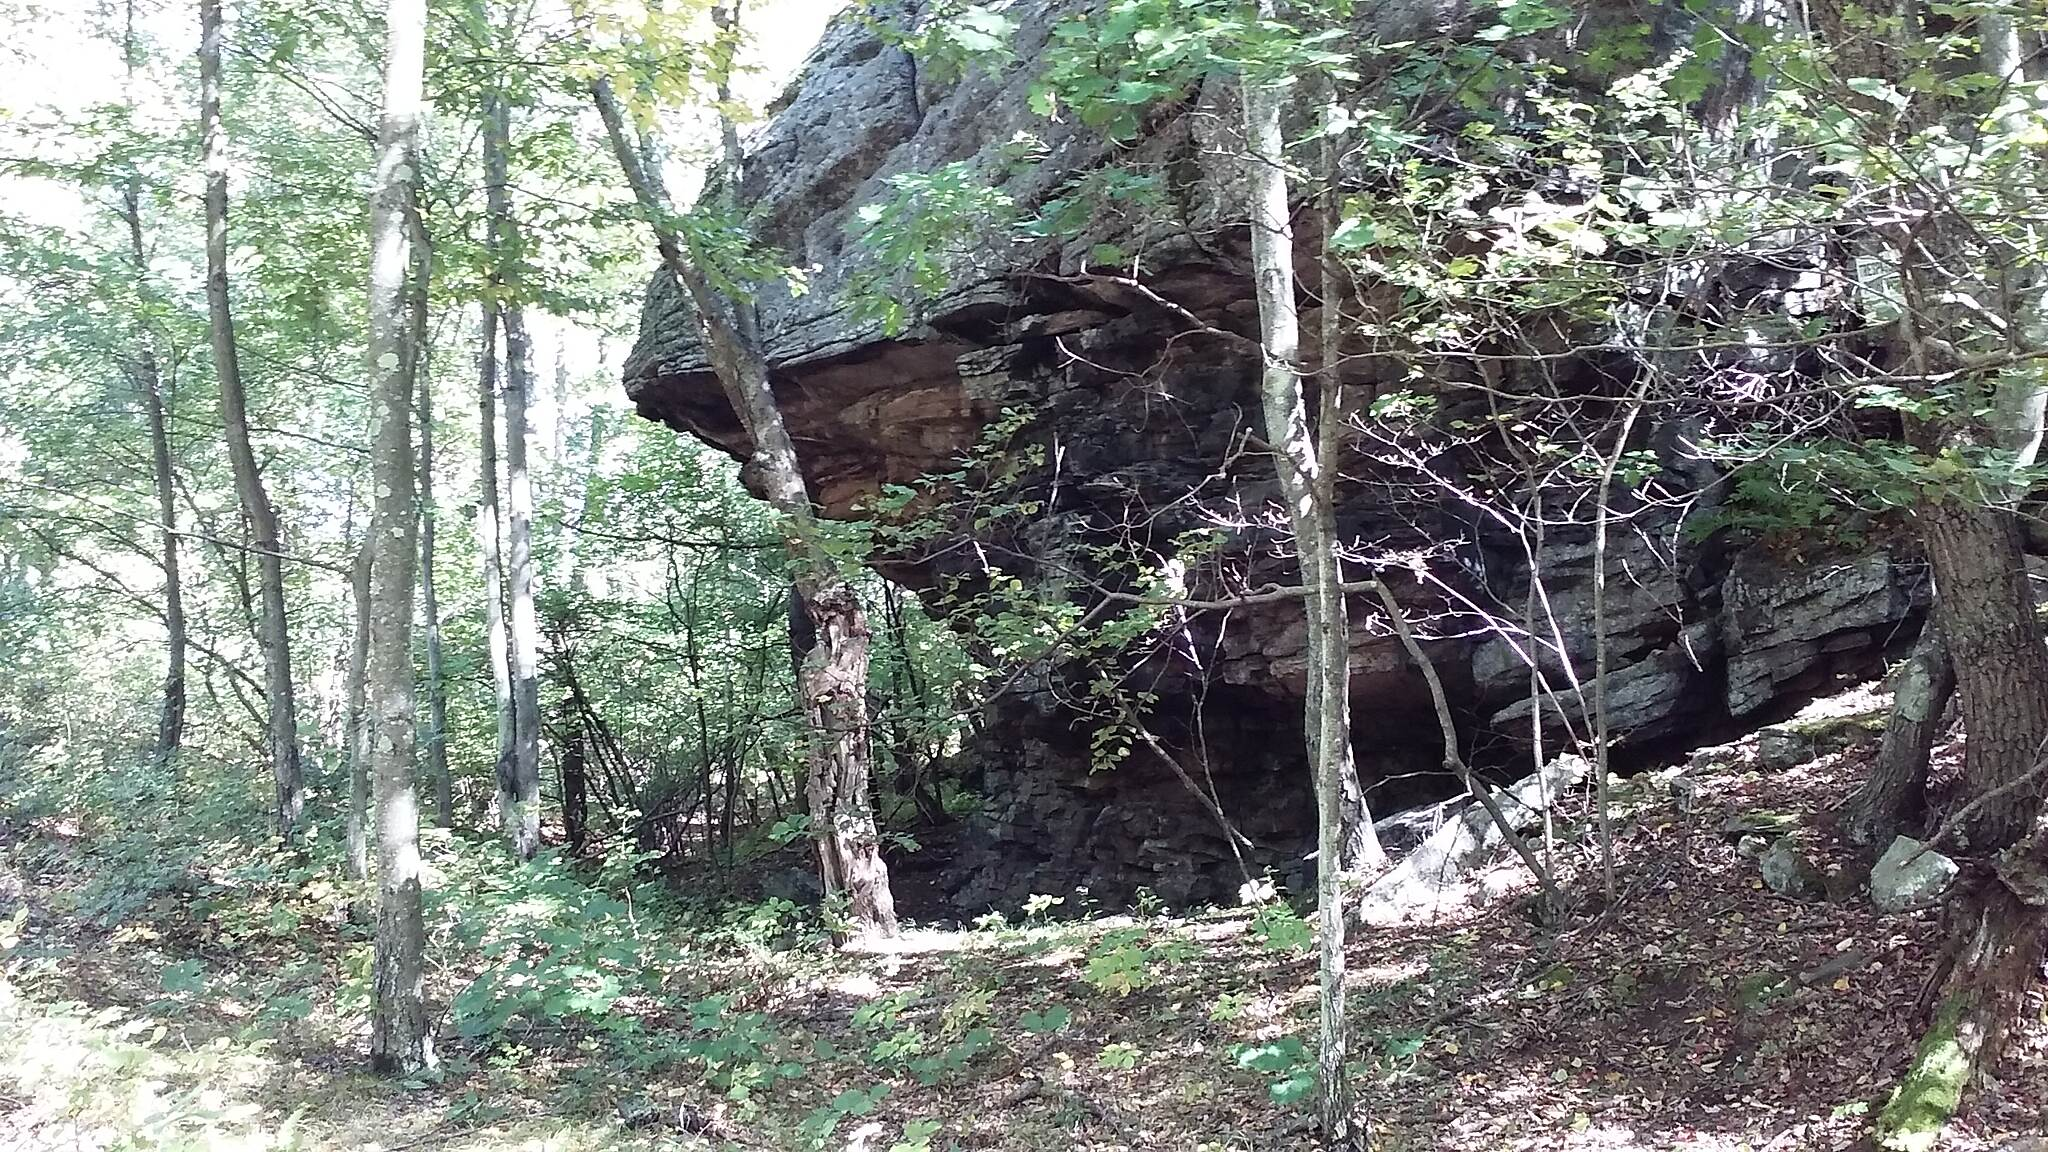 D&L Trail Rock Shelter Rock overhang found along the Black Diamond between Mountain Top and White Haven